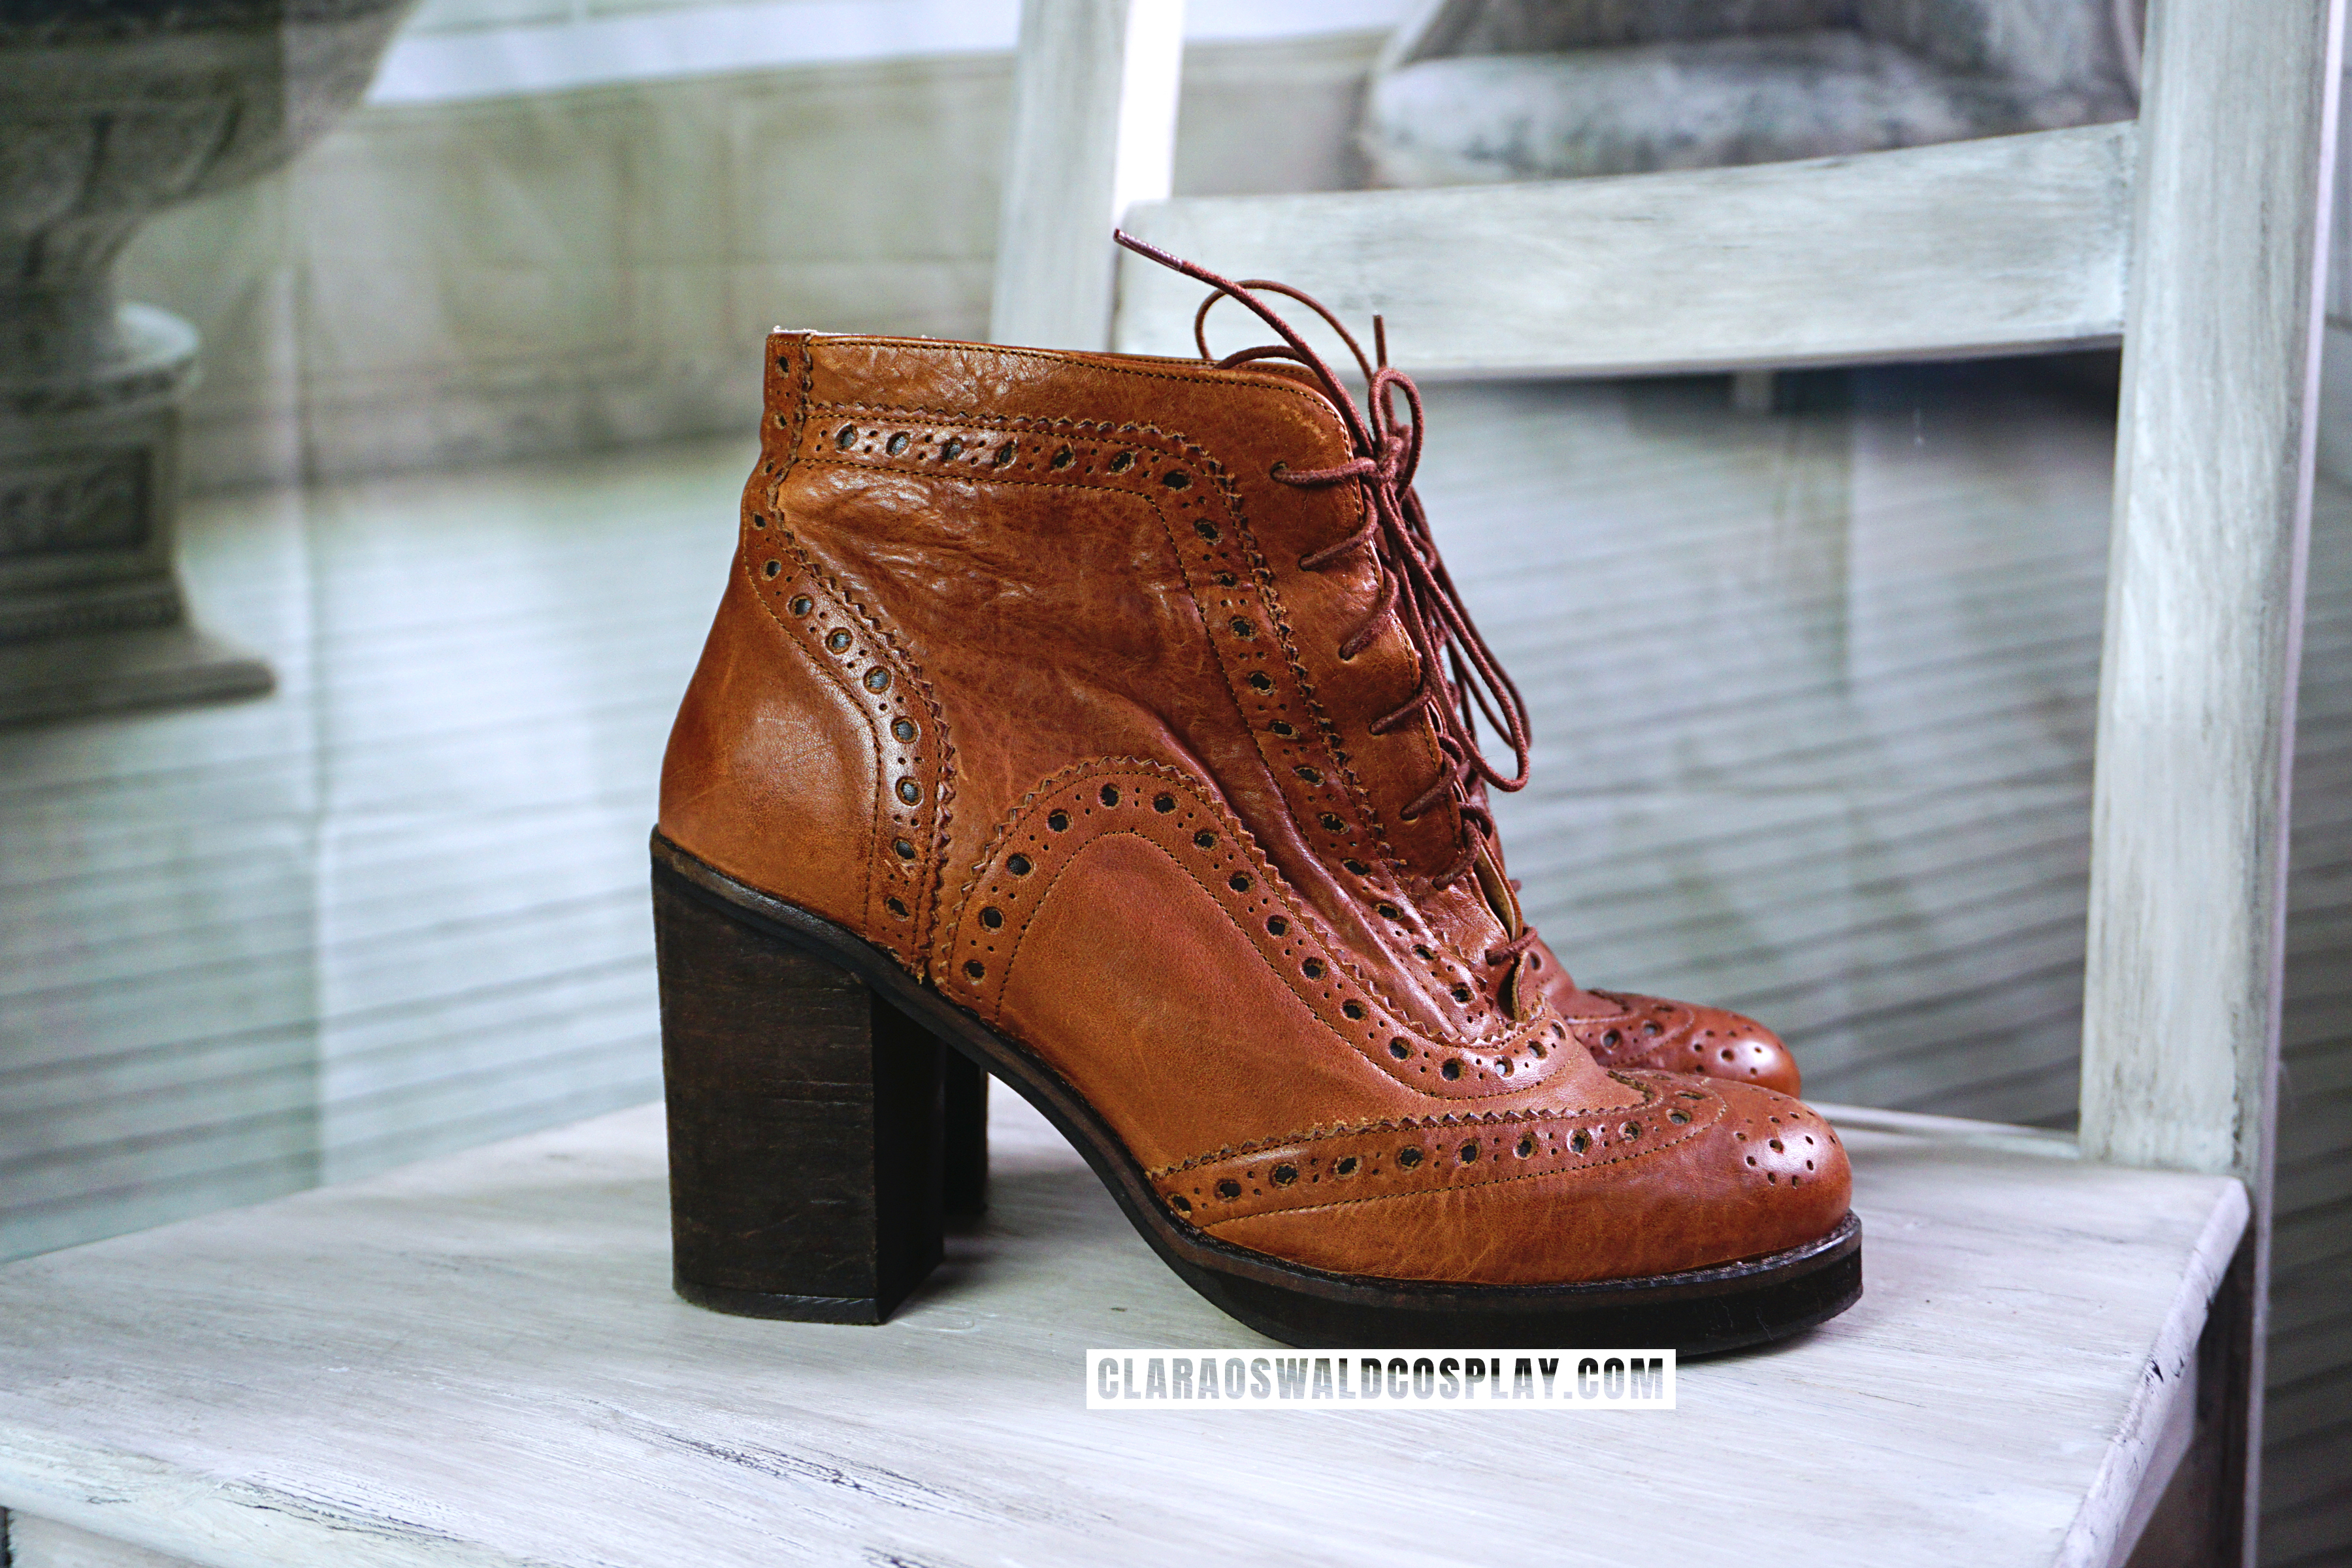 A closer look at the River Island Brogue Ankle Boots.